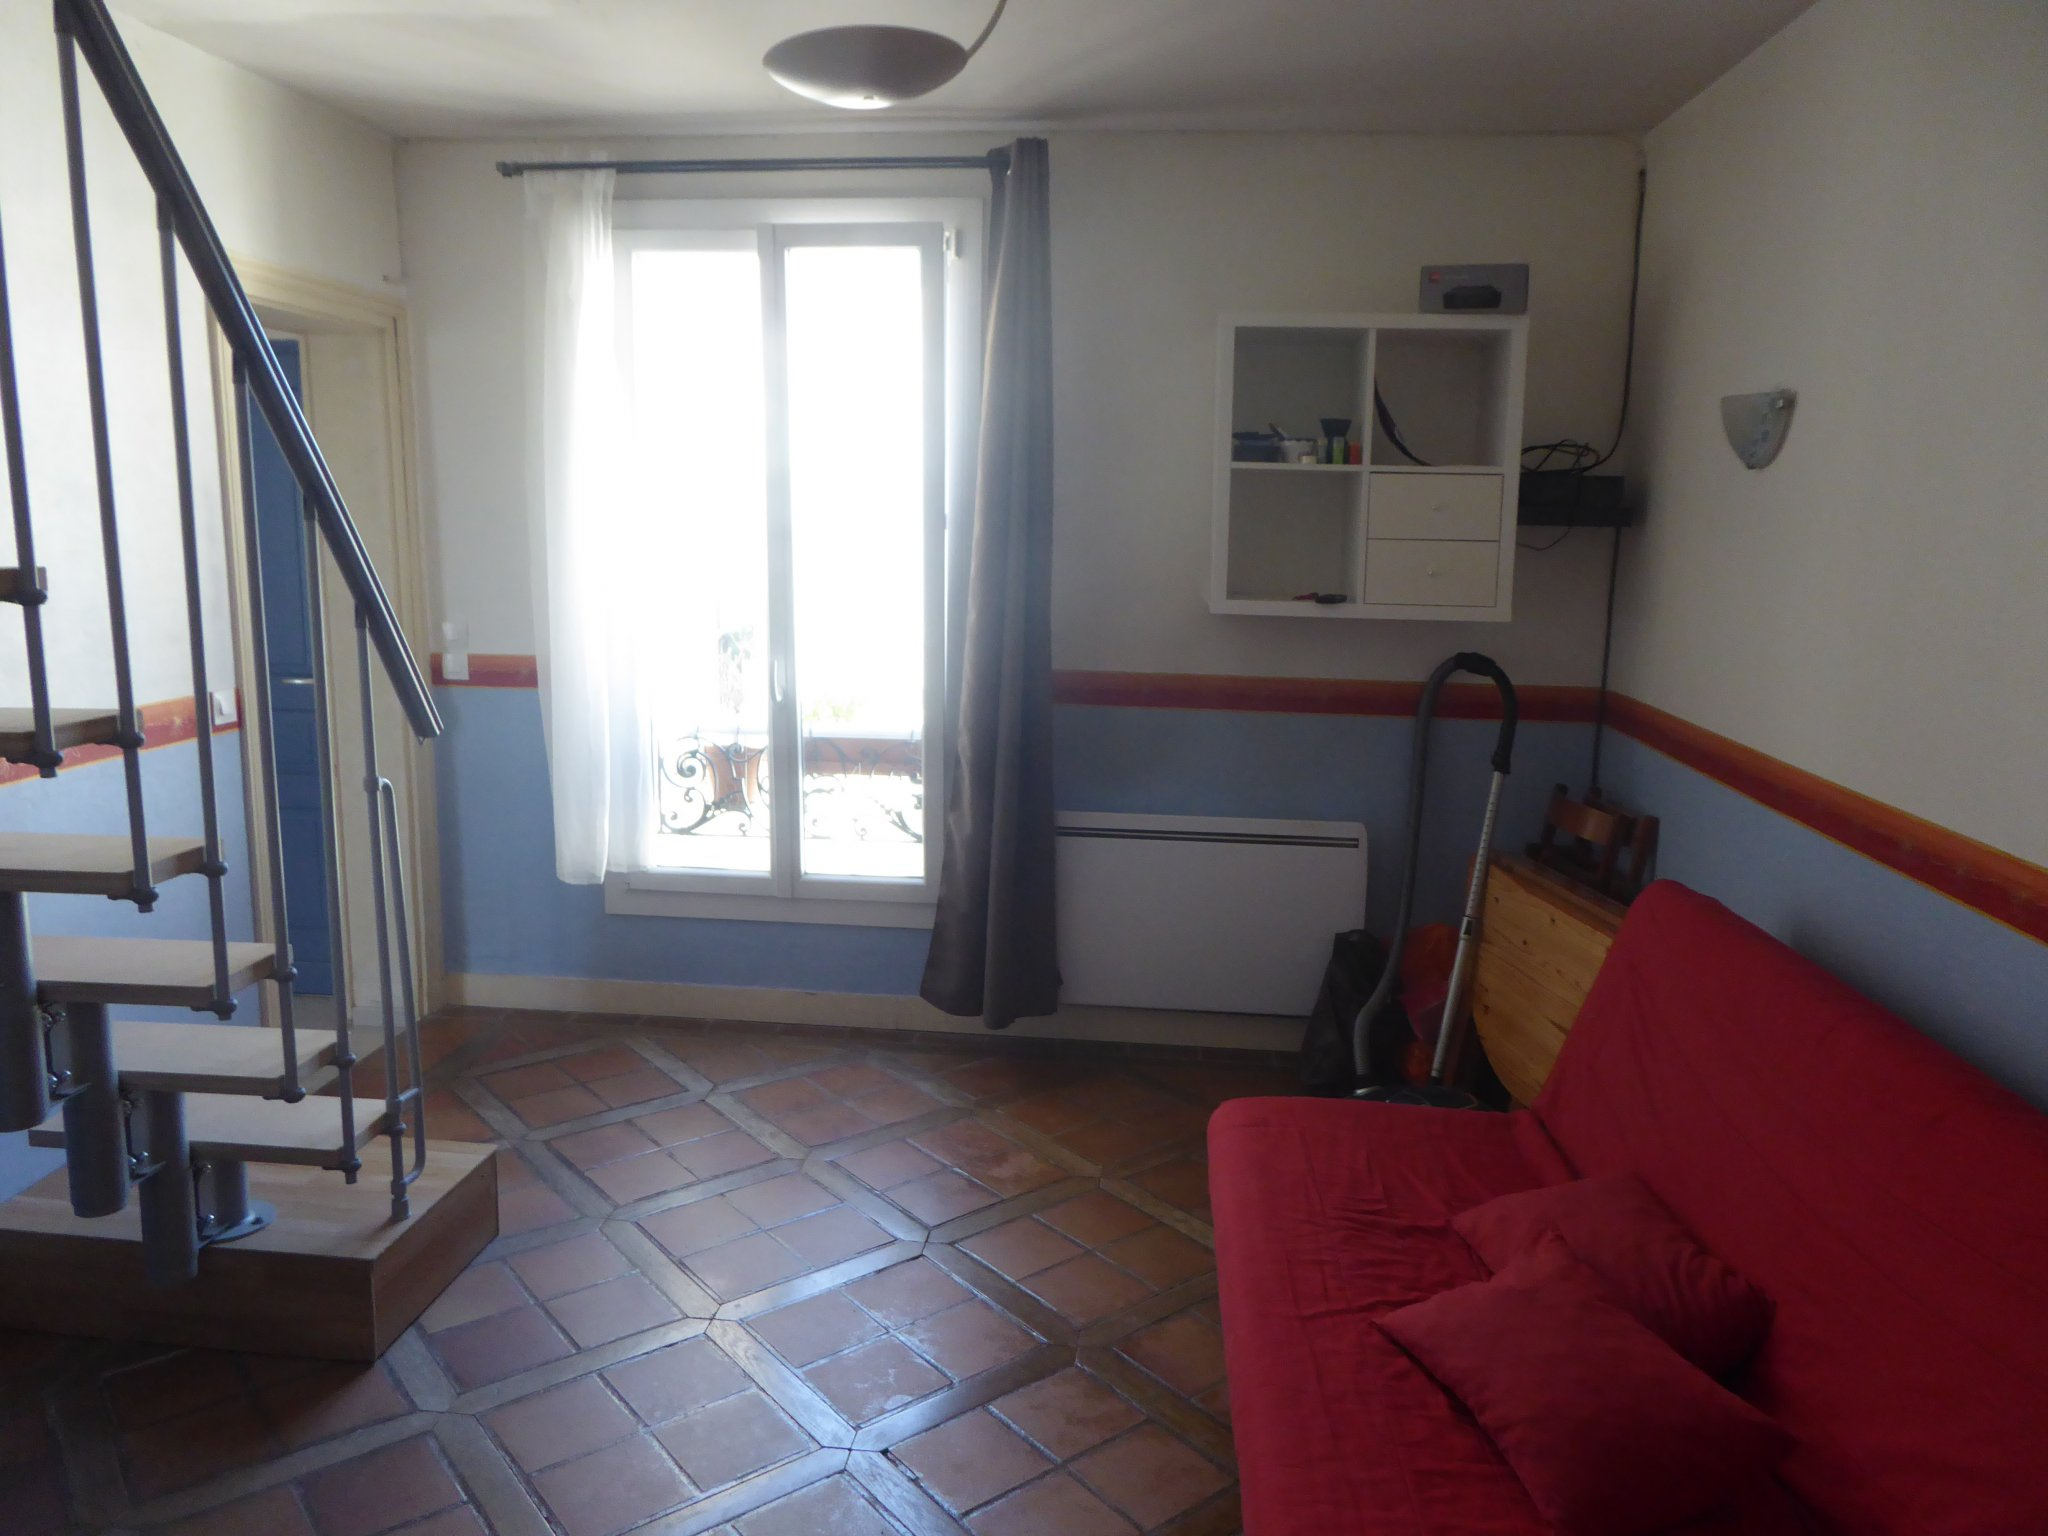 Image_6, Appartement, Vincennes, ref :V440003973